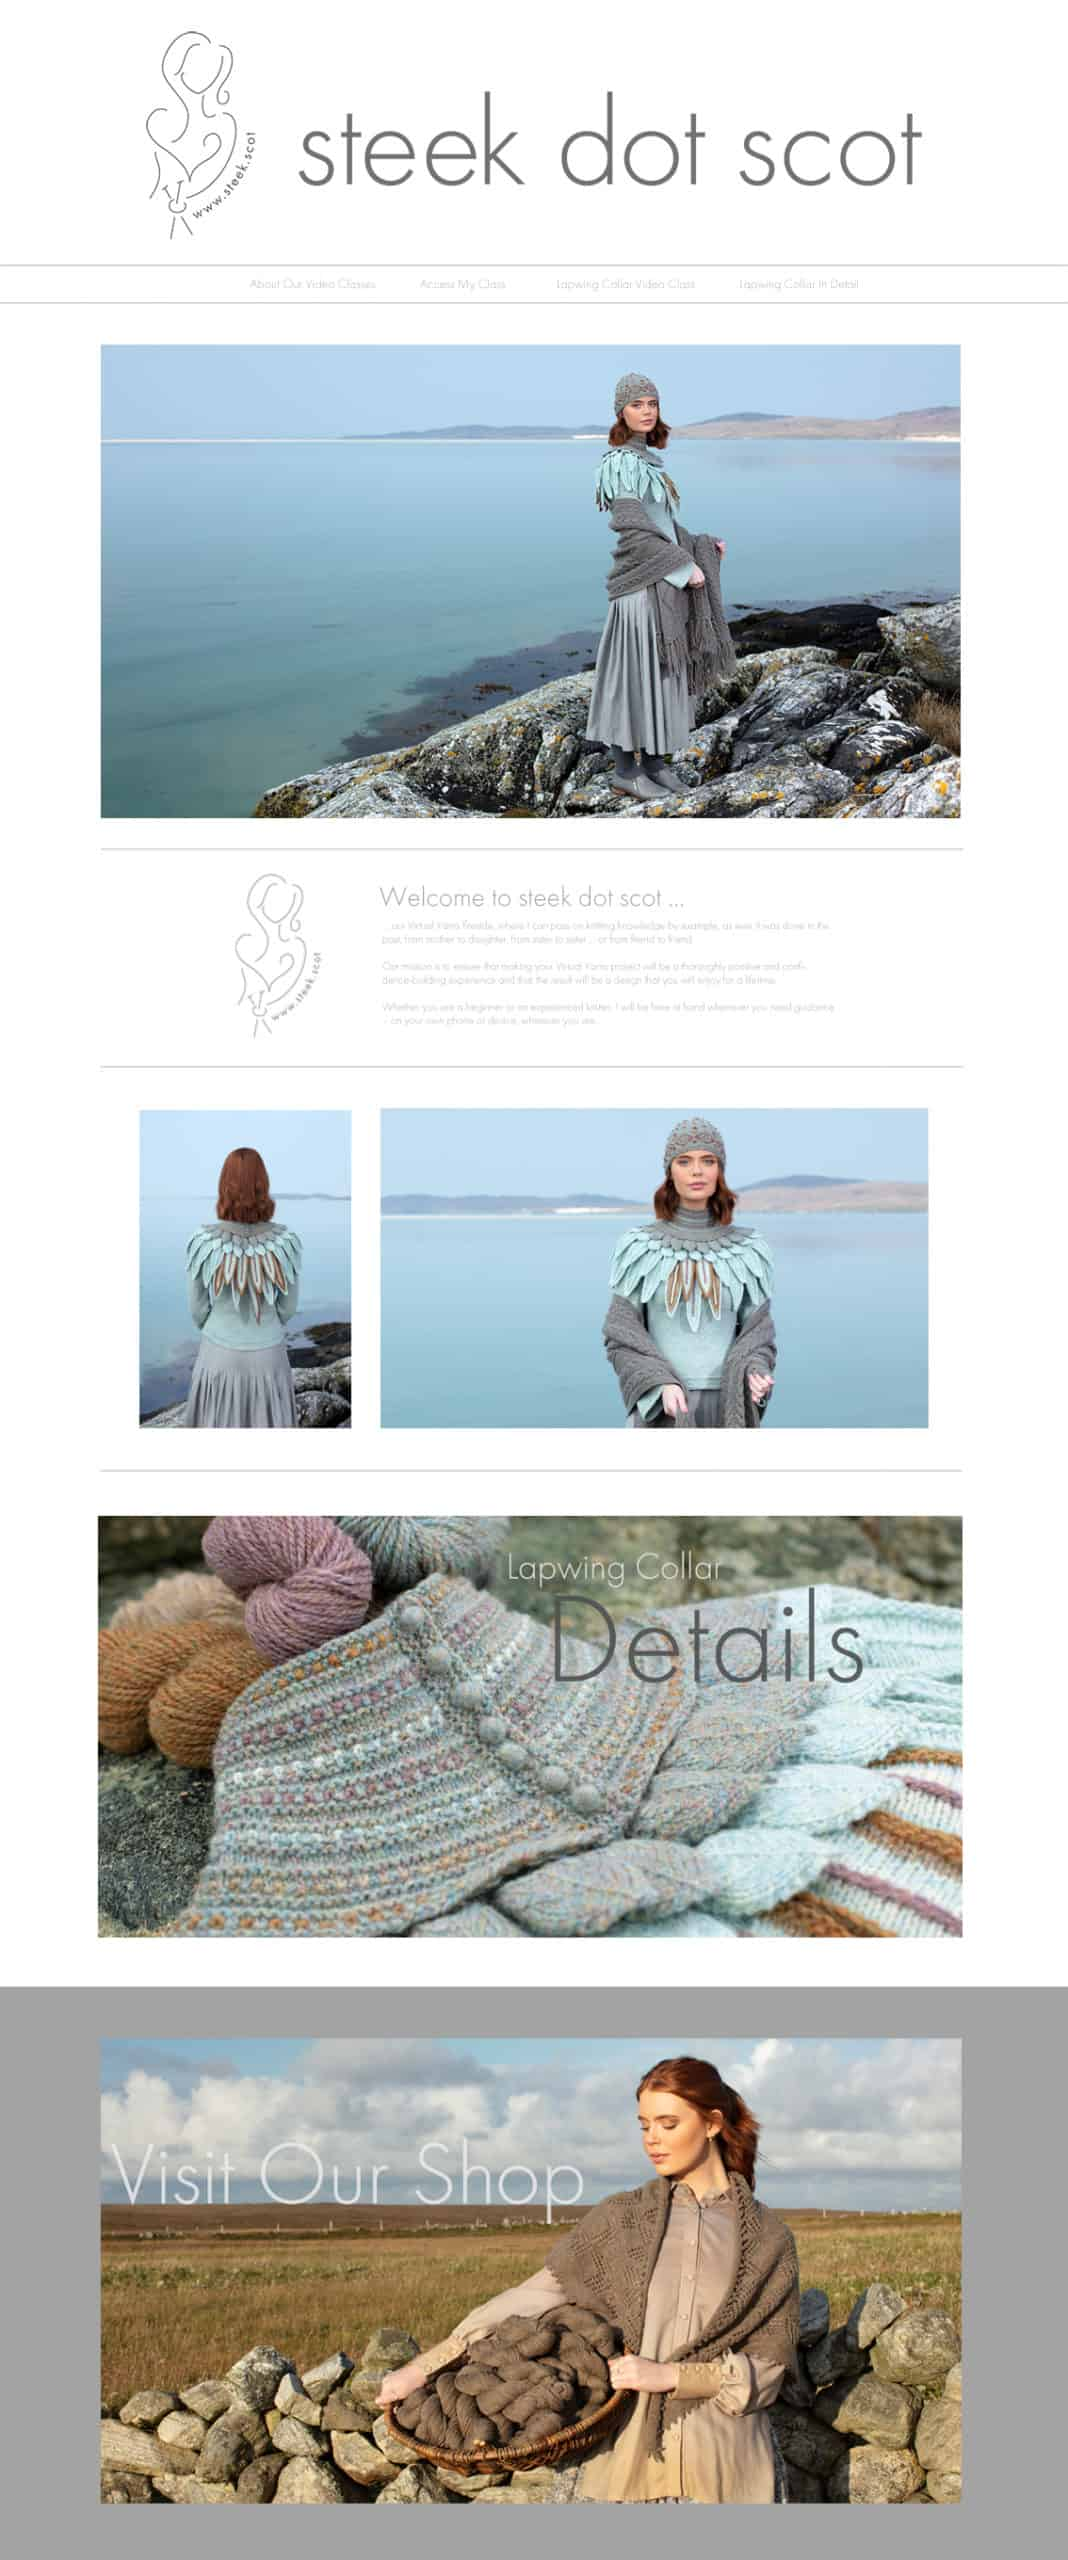 Photography & Website Design by Jade Starmore